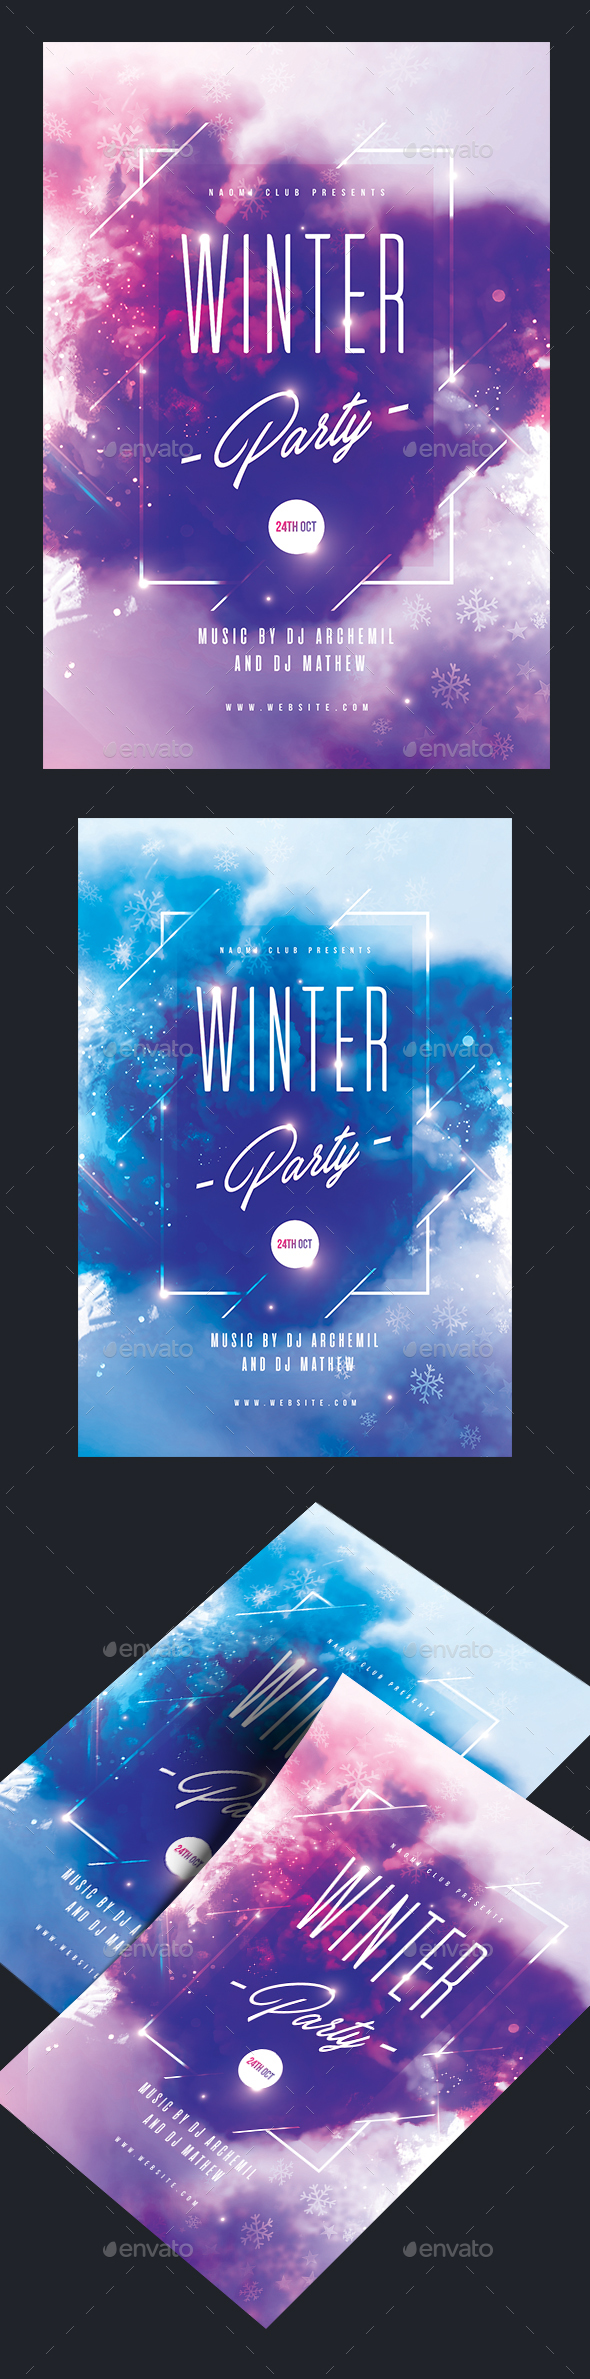 GraphicRiver Winter Party Flyer 20828471